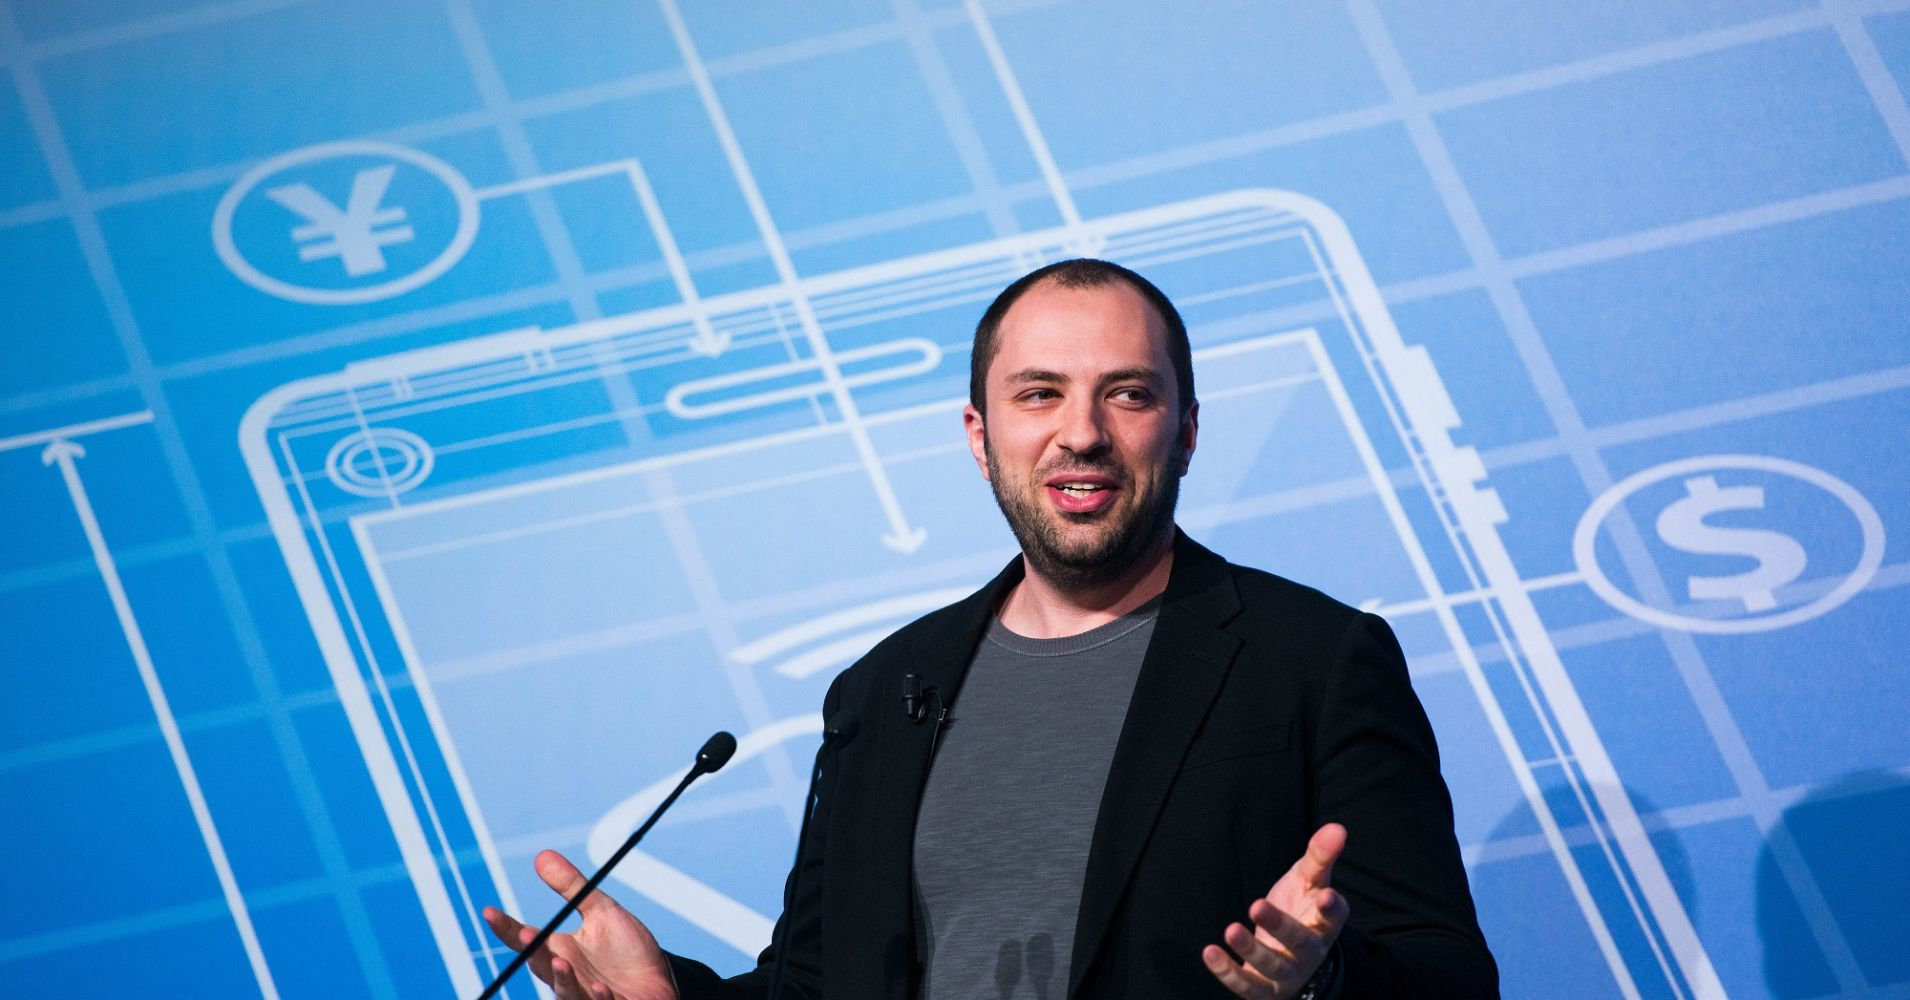 WhatsApp business chief Arora becomes Facebook's latest high-profile departure